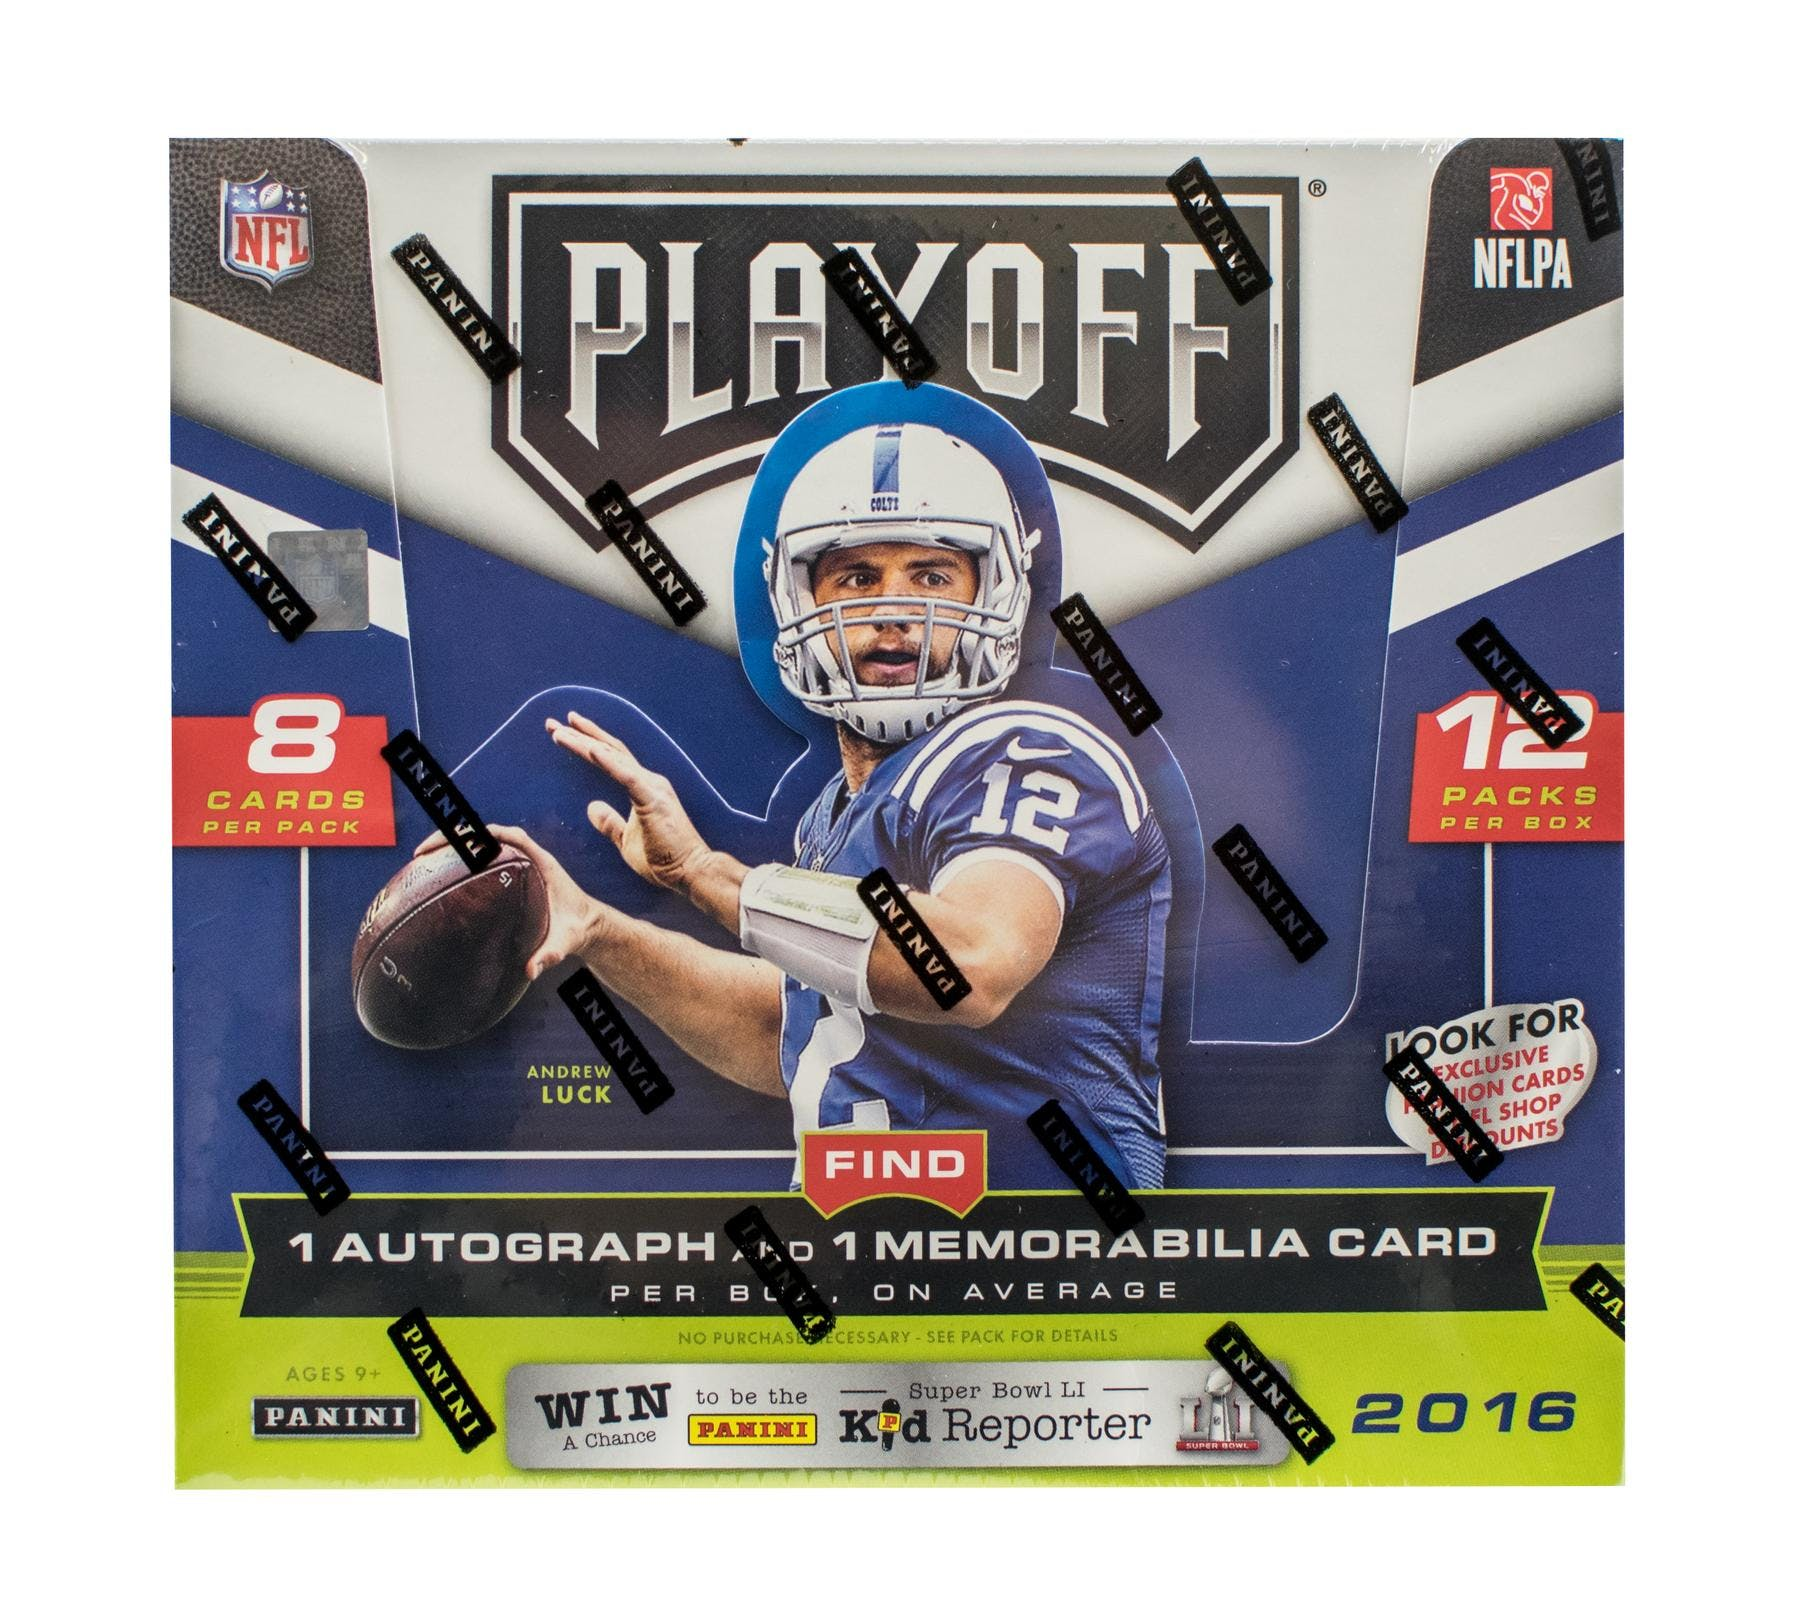 2016 Panini Playoff Football Hobby Box-Cherry Collectables